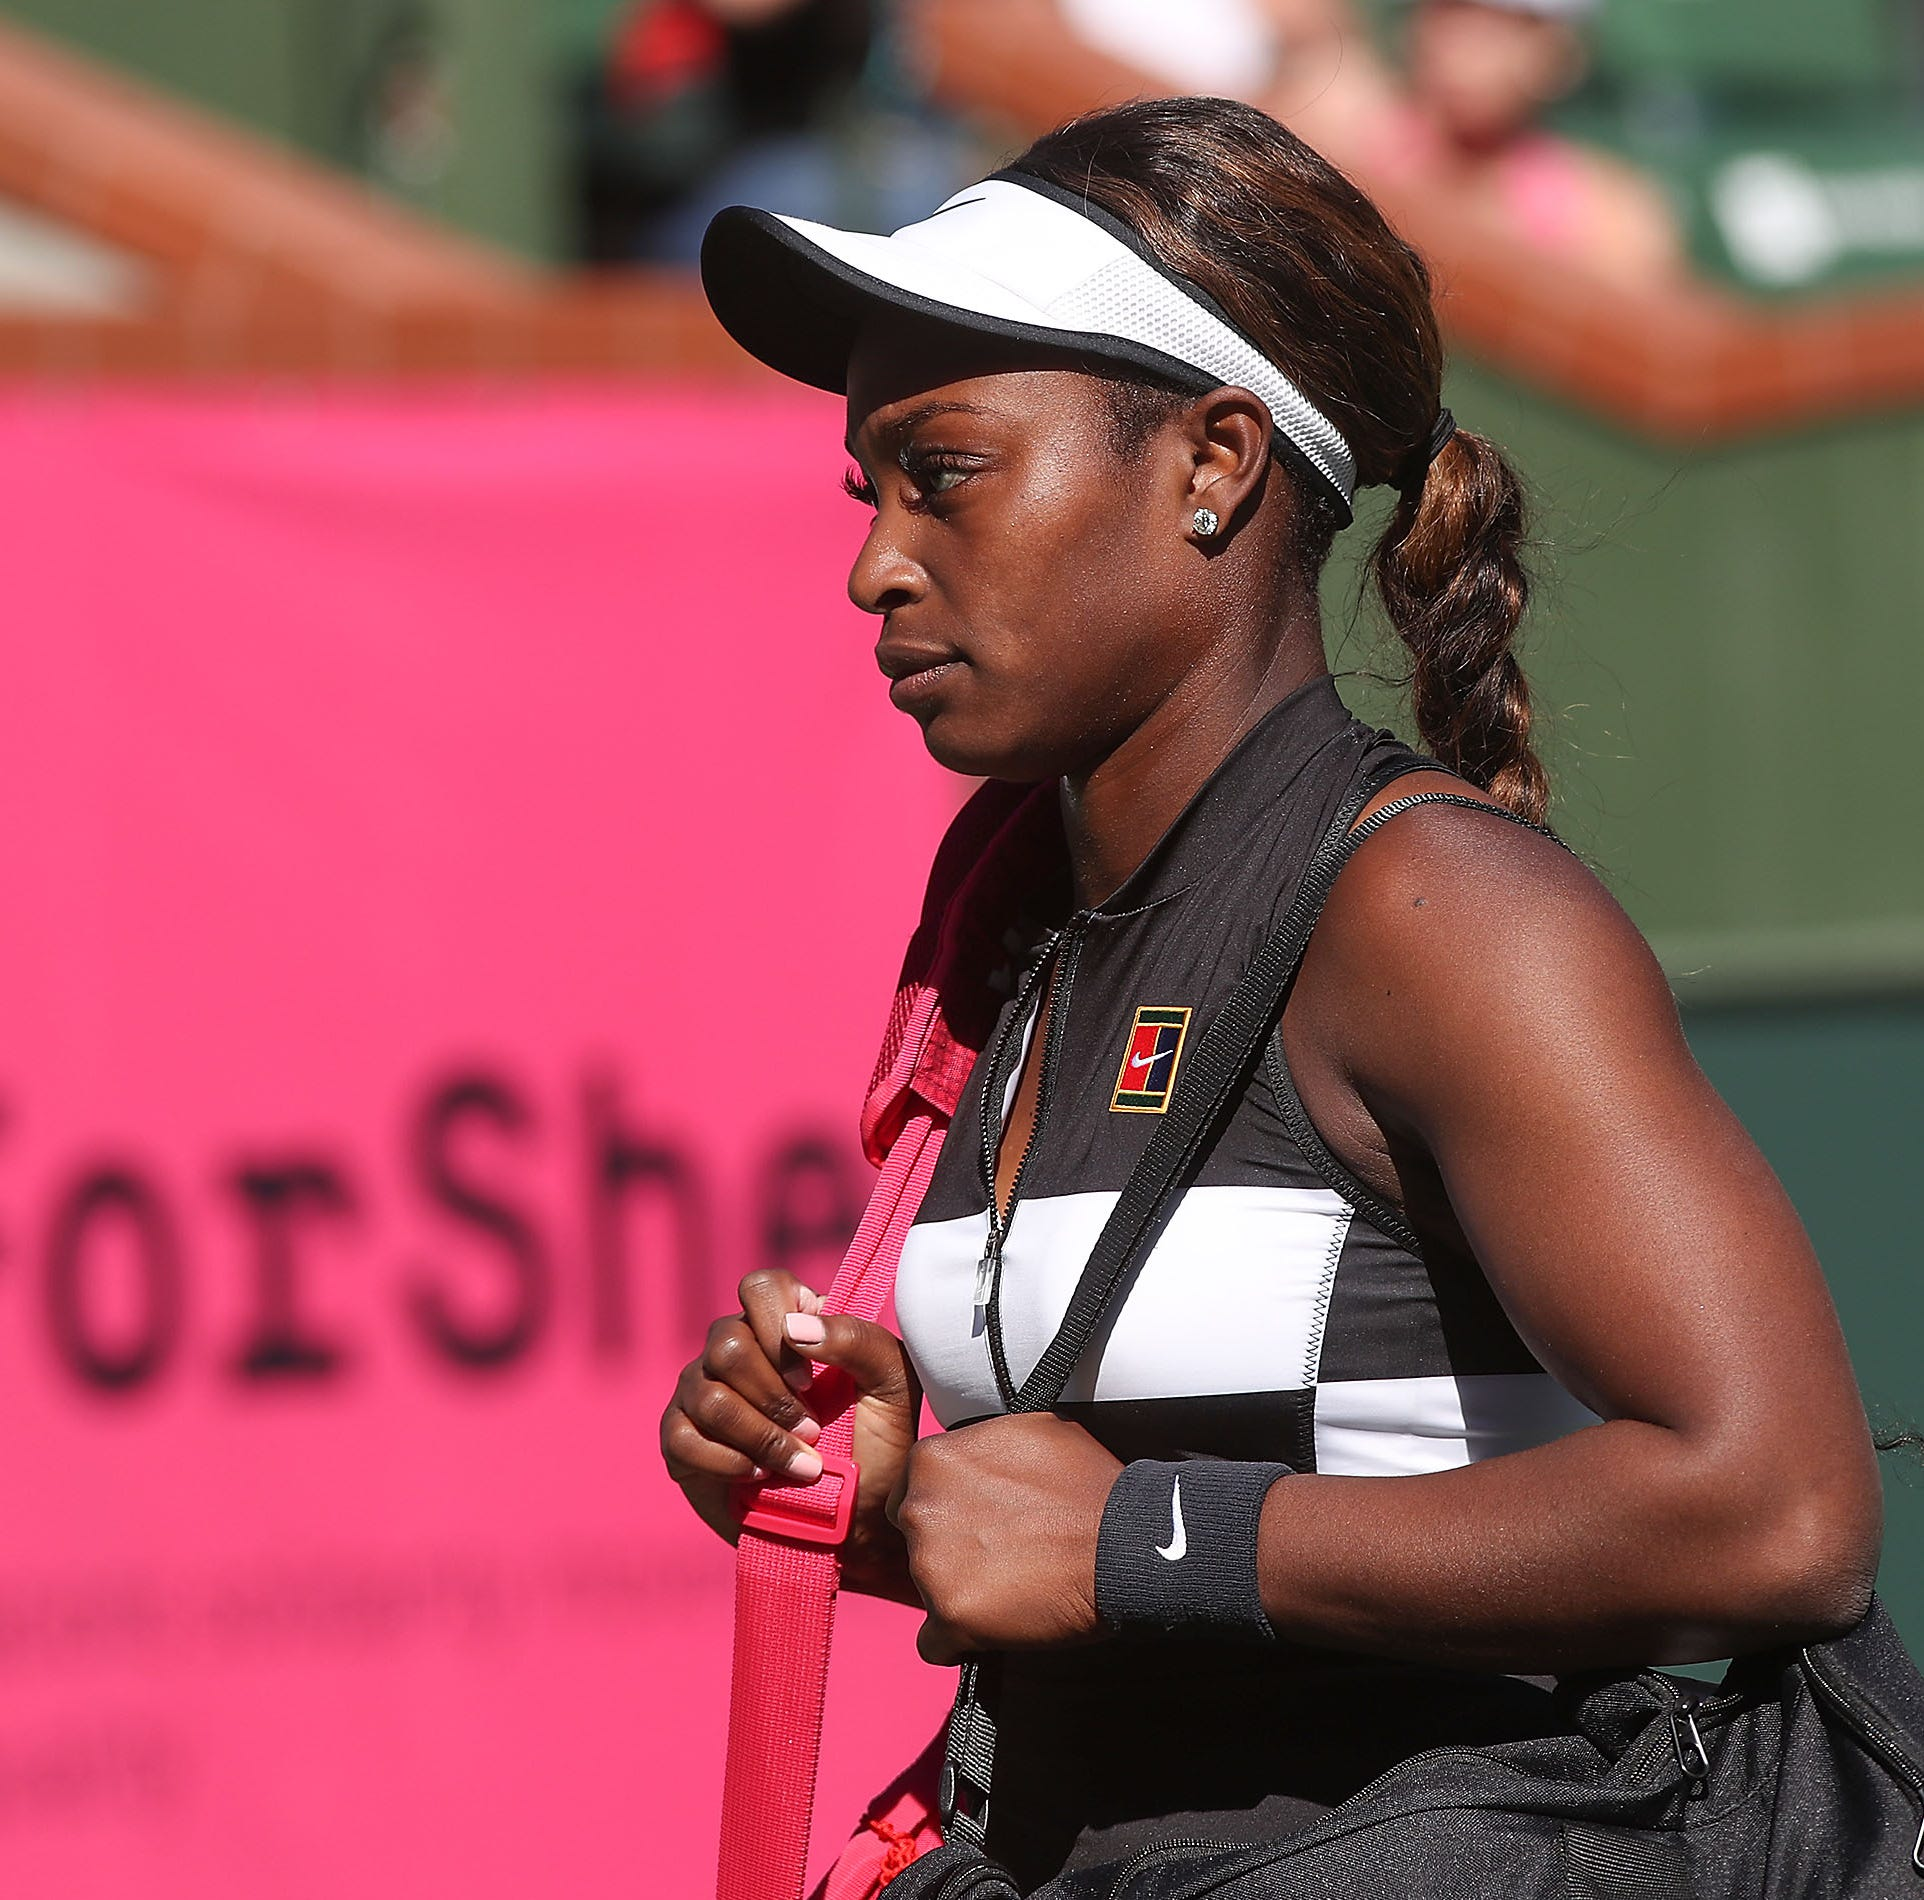 Fourth-ranked Sloane Stephens gets dominated in first match at BNP Paribas Open